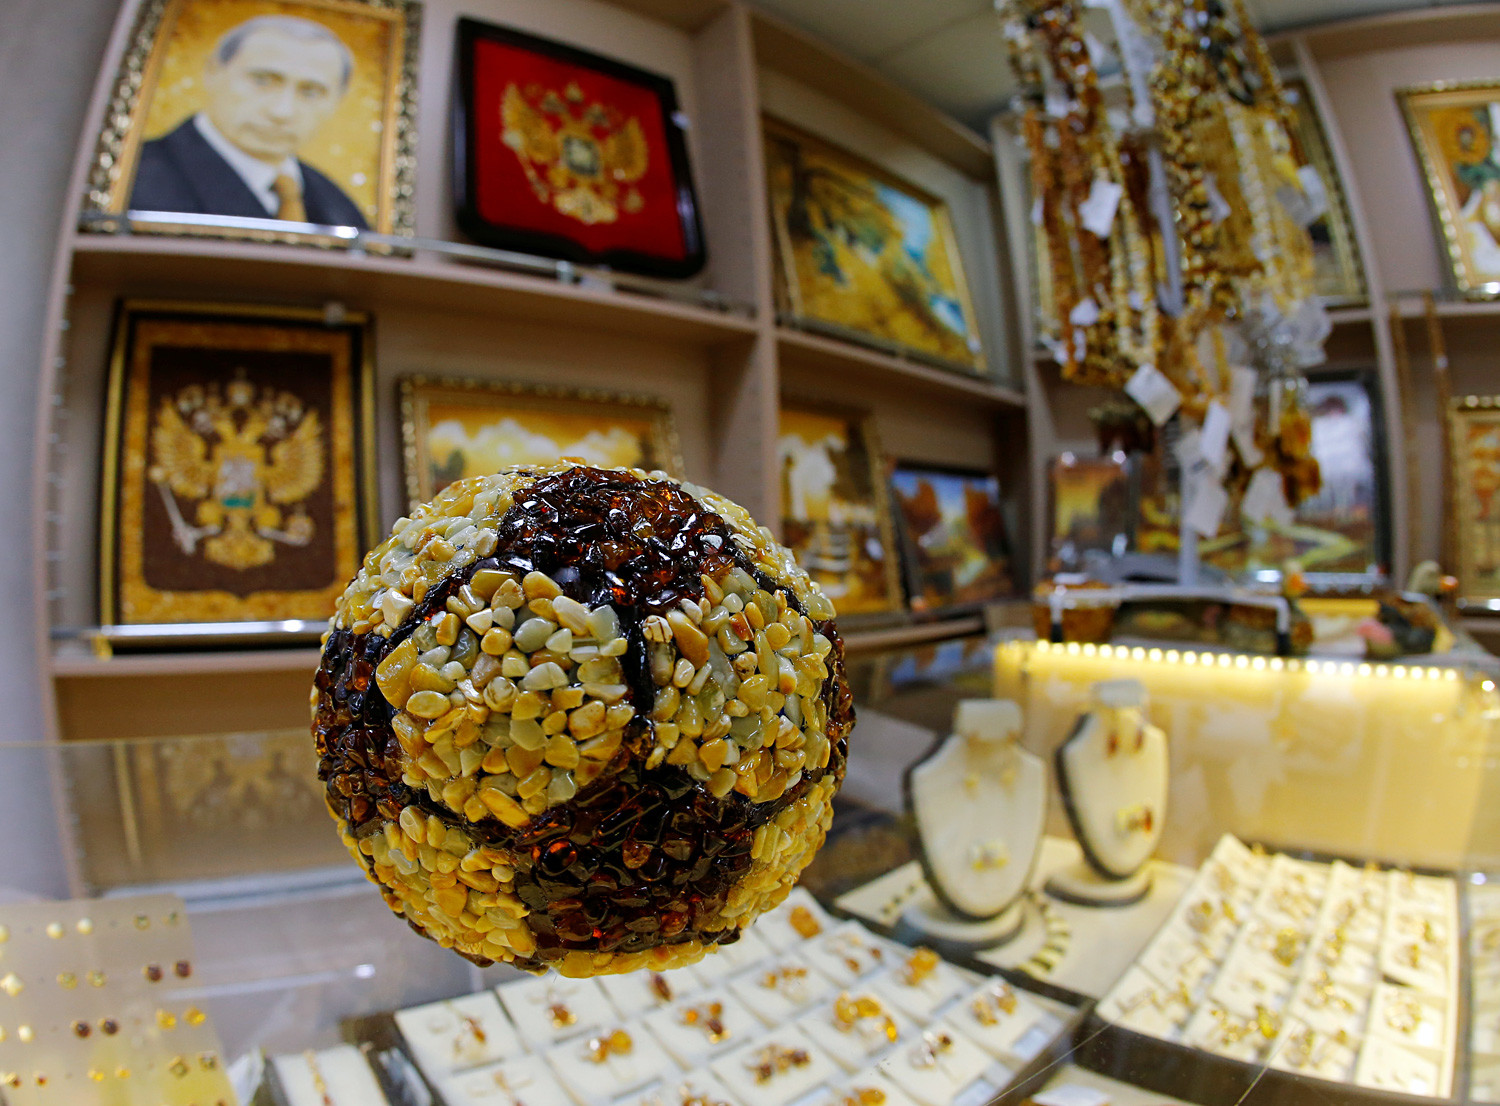 A soccer ball (yes, there's a portrait of Vladimir Putin on the wall, also made with amber)